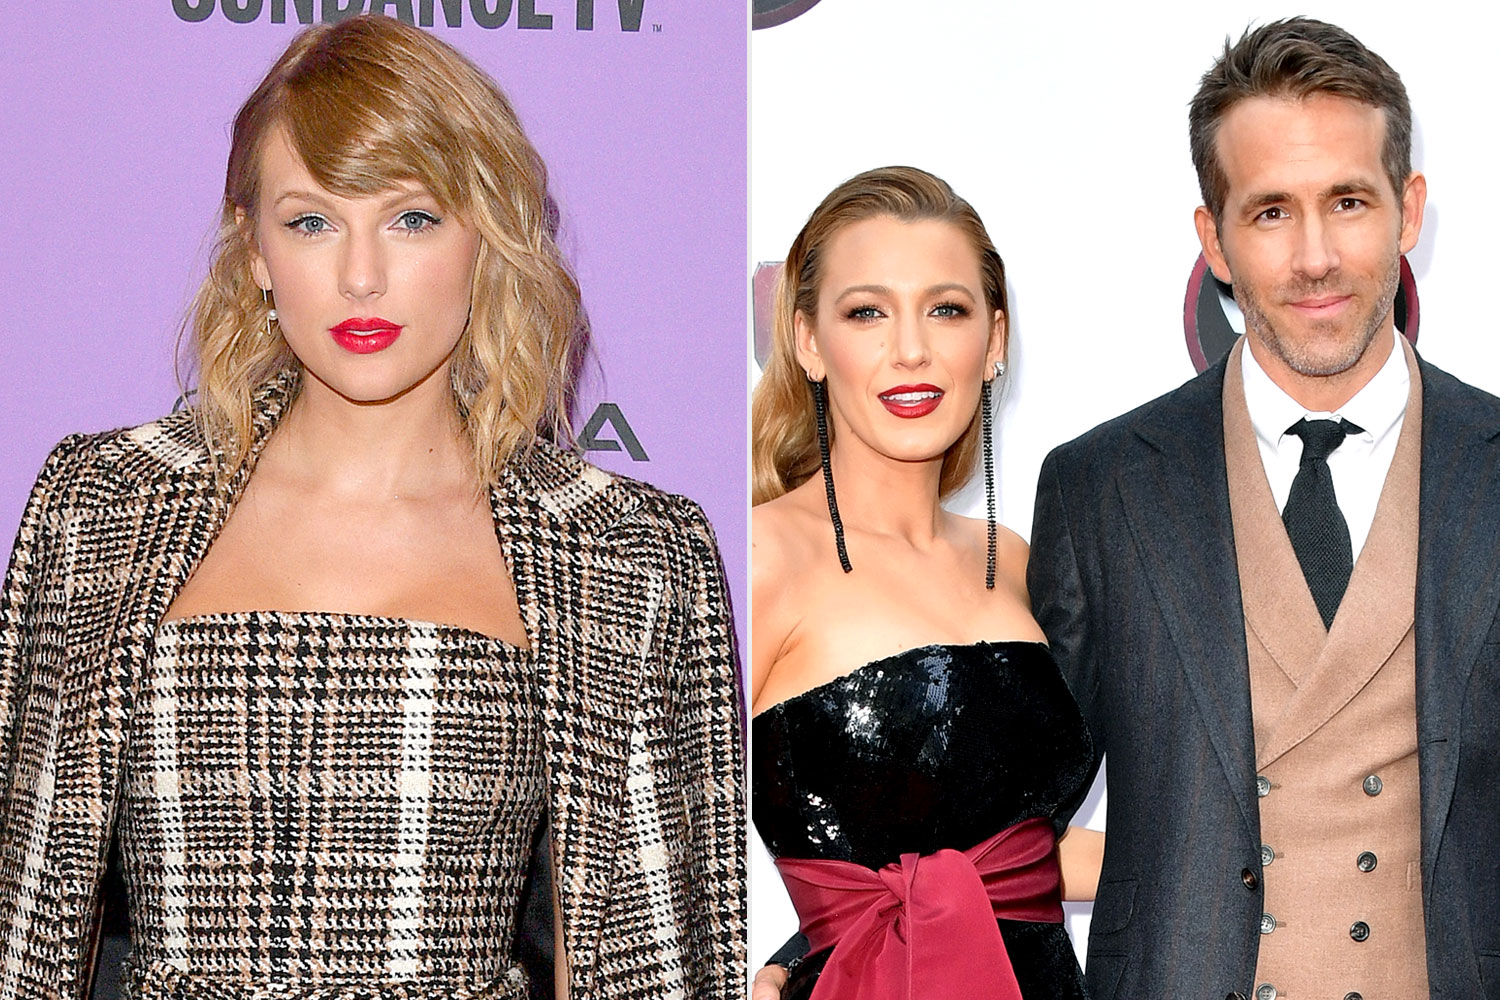 Taylor Swift, Blake Lively, Ryan Reynolds